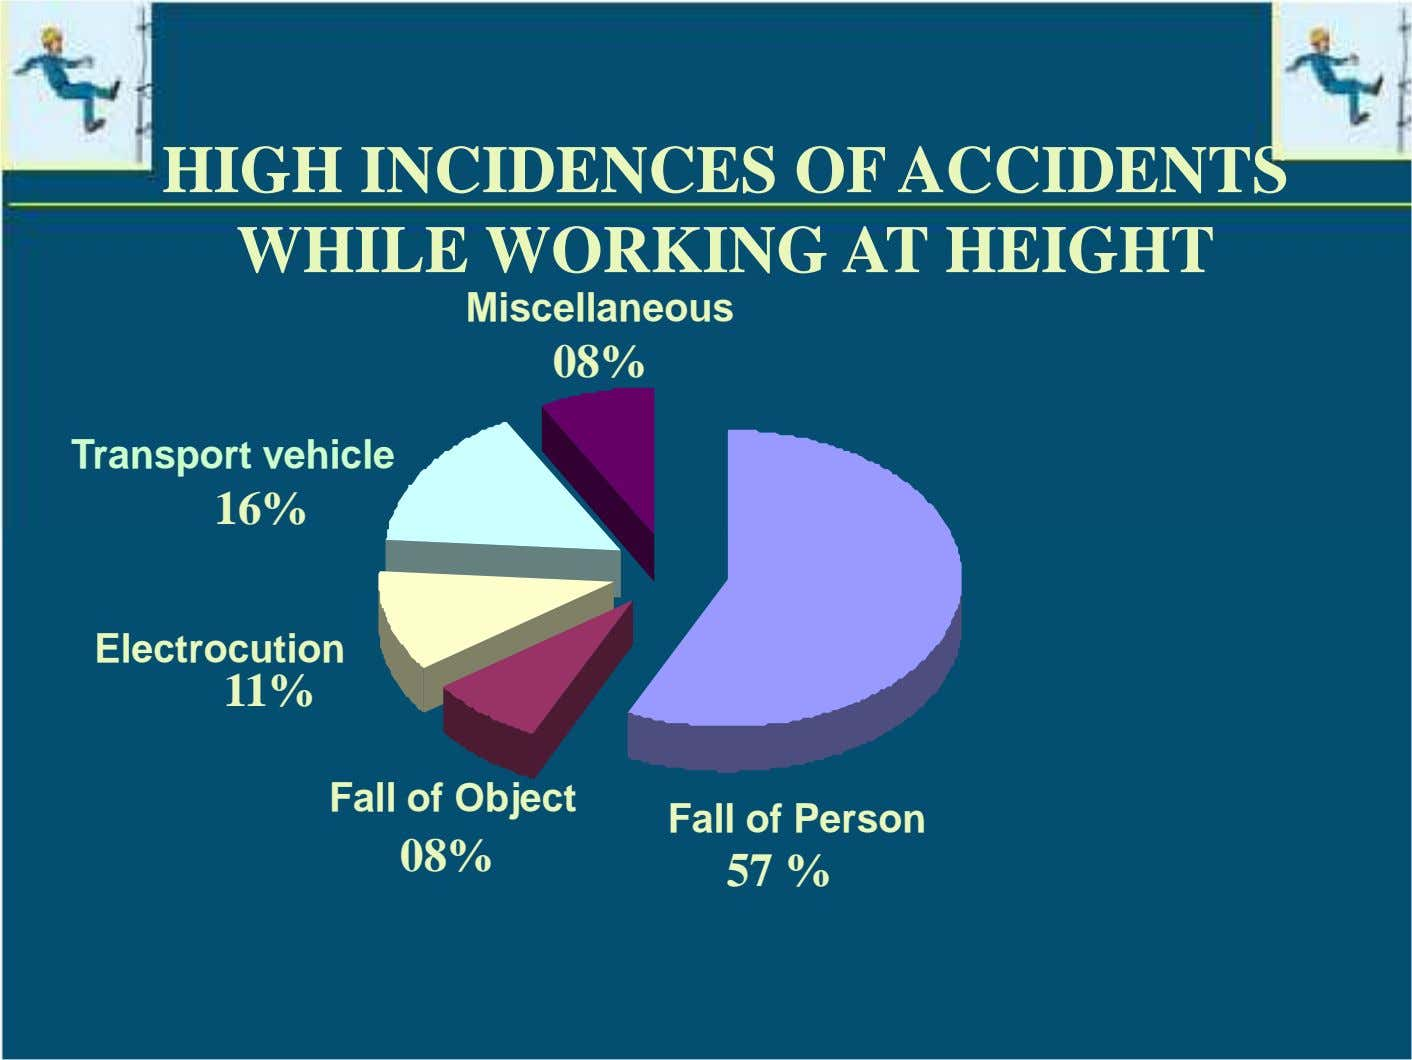 HIGH INCIDENCES OF ACCIDENTS WHILE WORKING AT HEIGHT Miscellaneous 08% Transport vehicle 16% Electrocution 11%